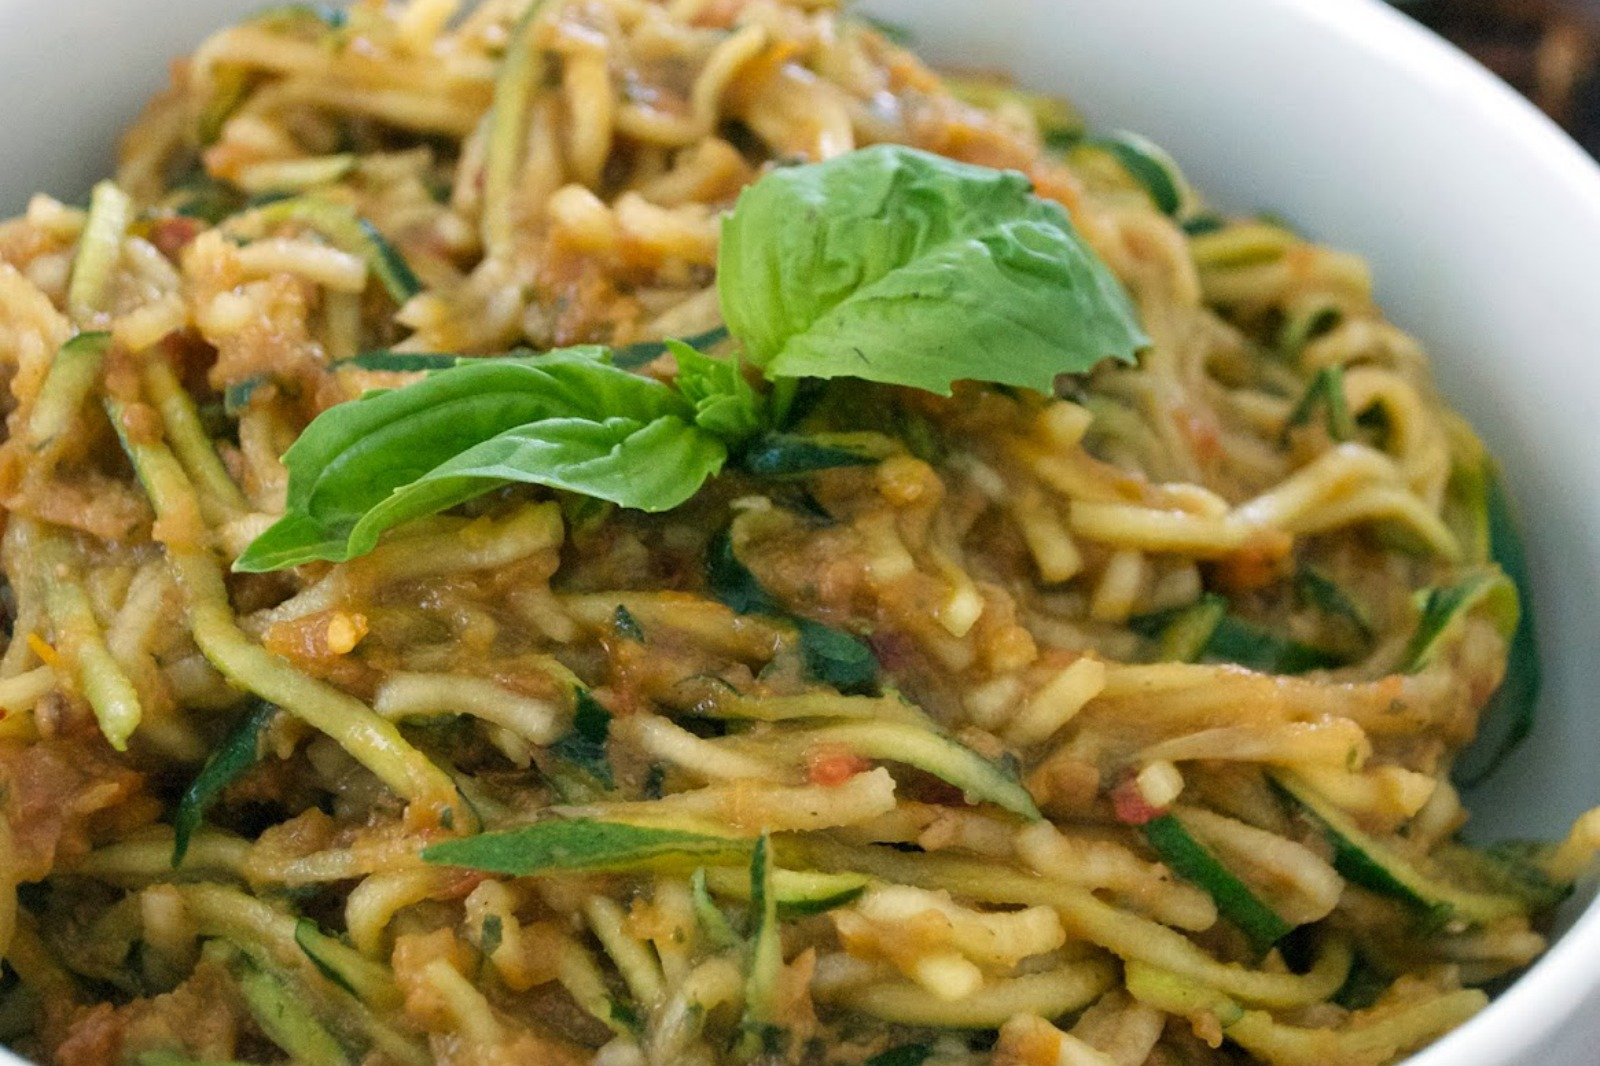 Traditional Spaghetti Made Vegan With Zucchini Noodles